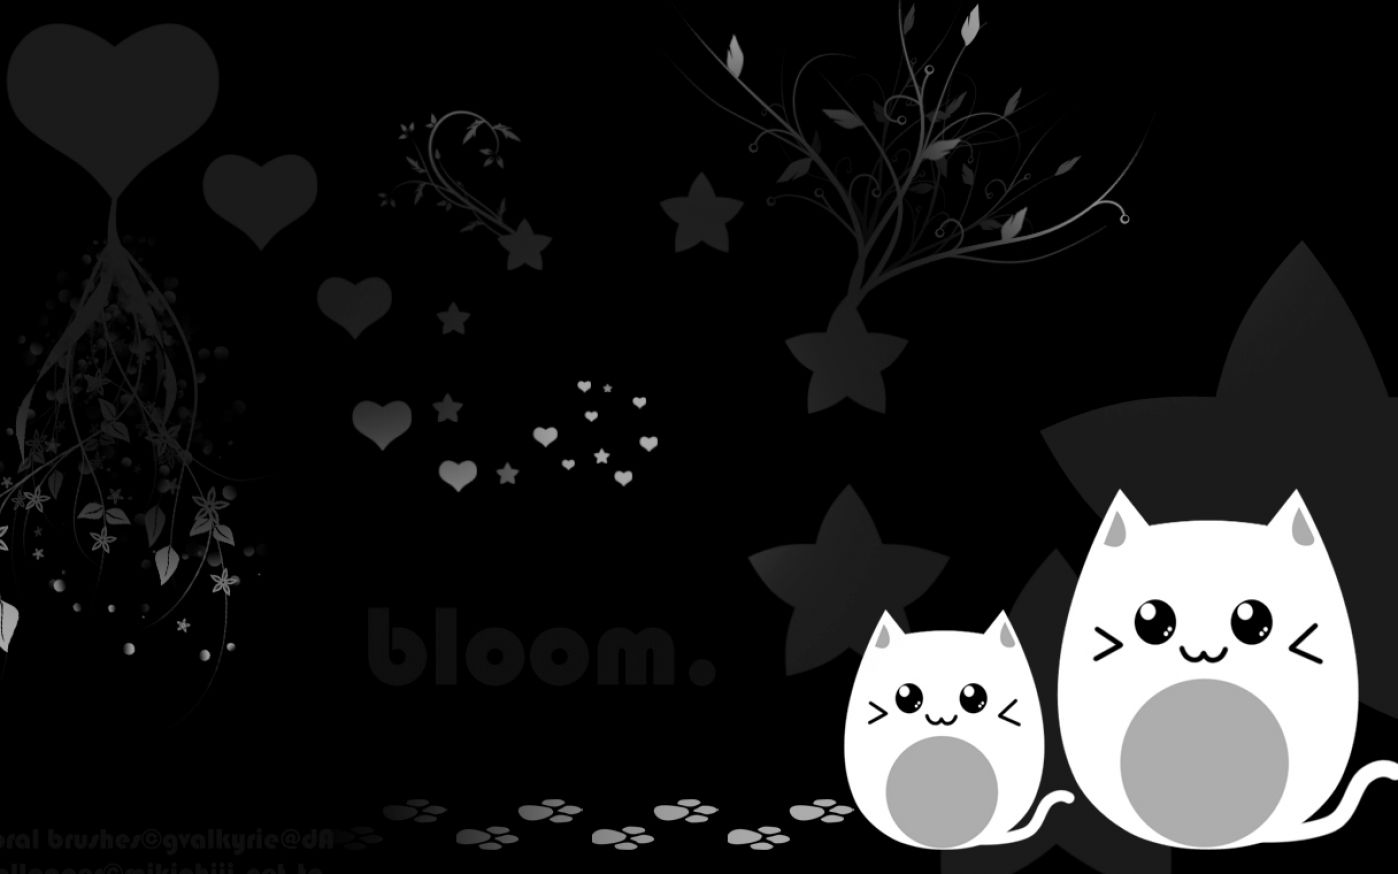 Cute black and white wallpaper pictures 1 1398x874